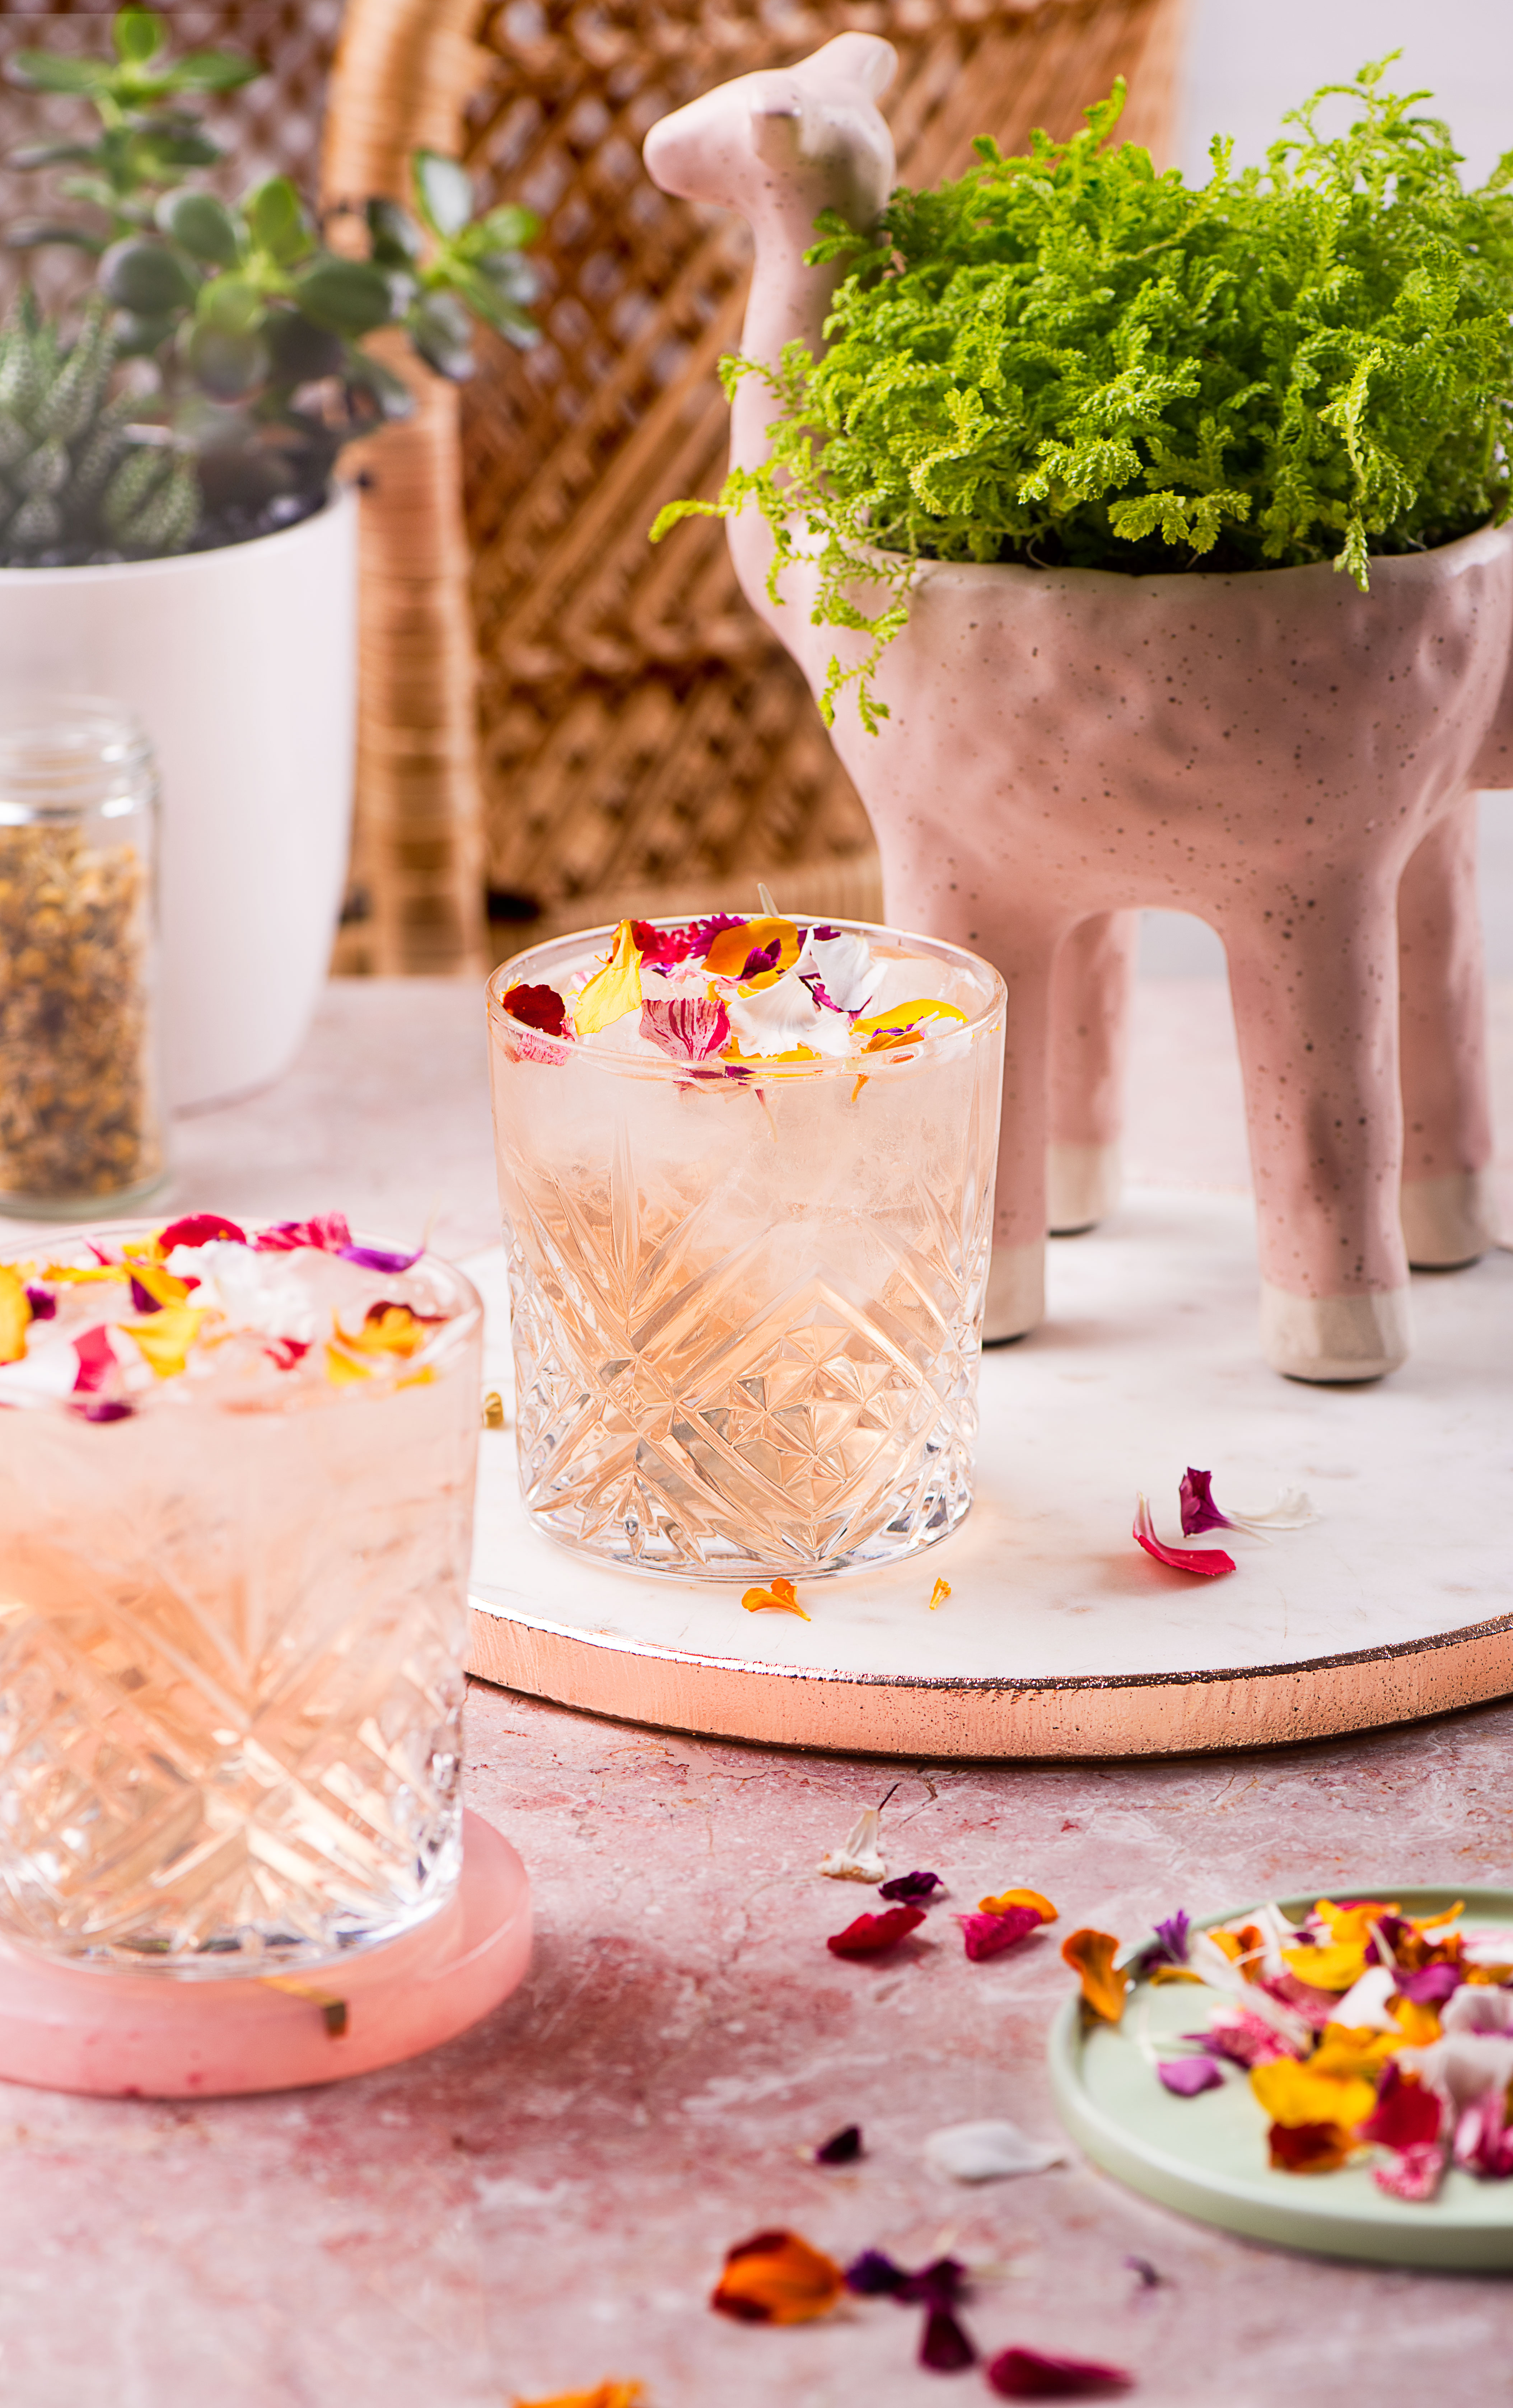 GIN-AND-FLOWERS